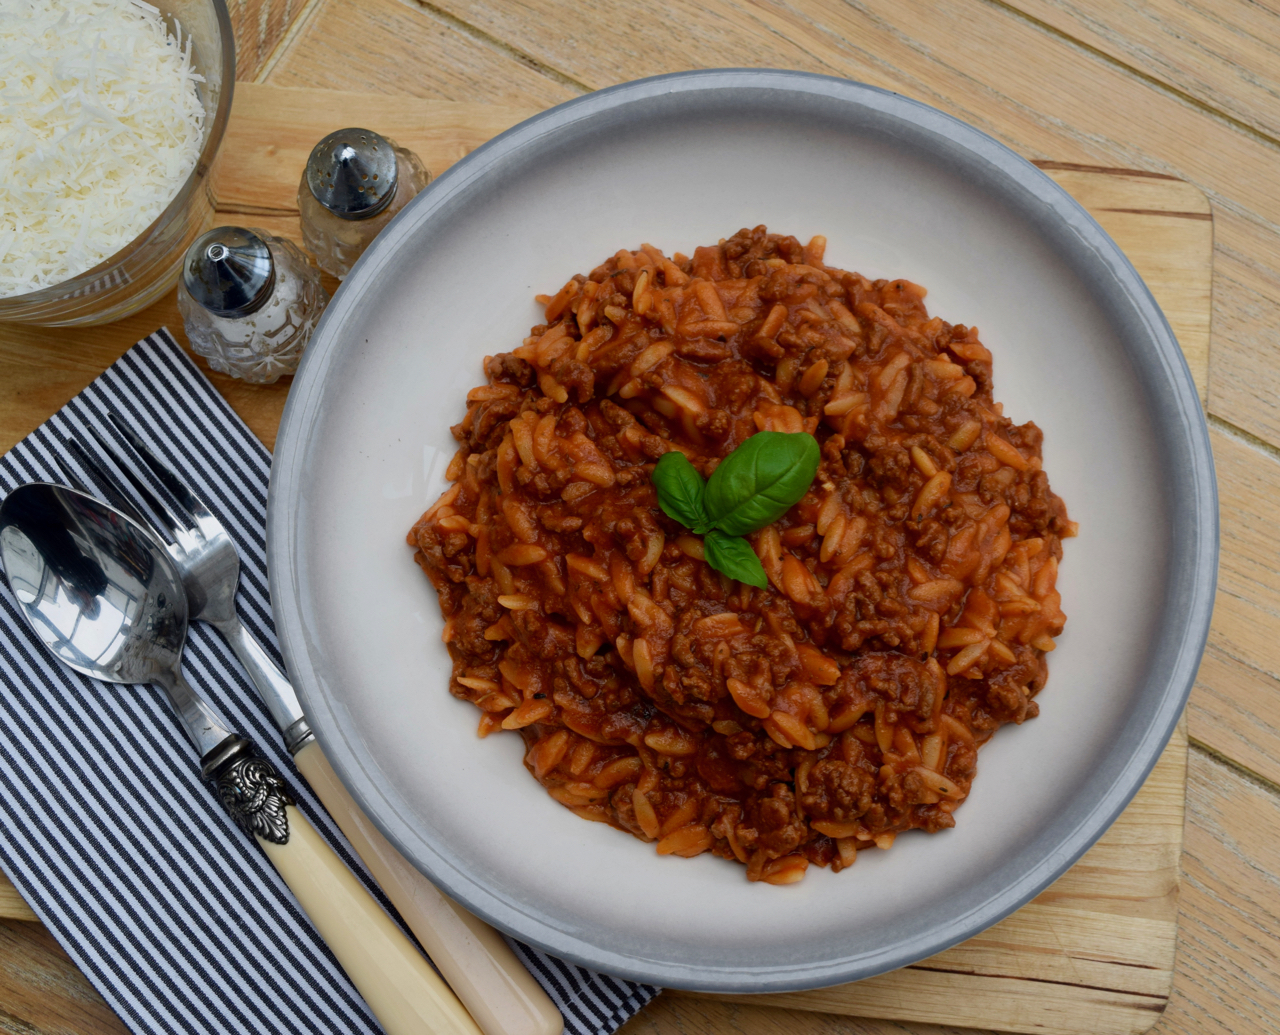 Instant-pot-bolognese-recipe-lucyloves-foodblog